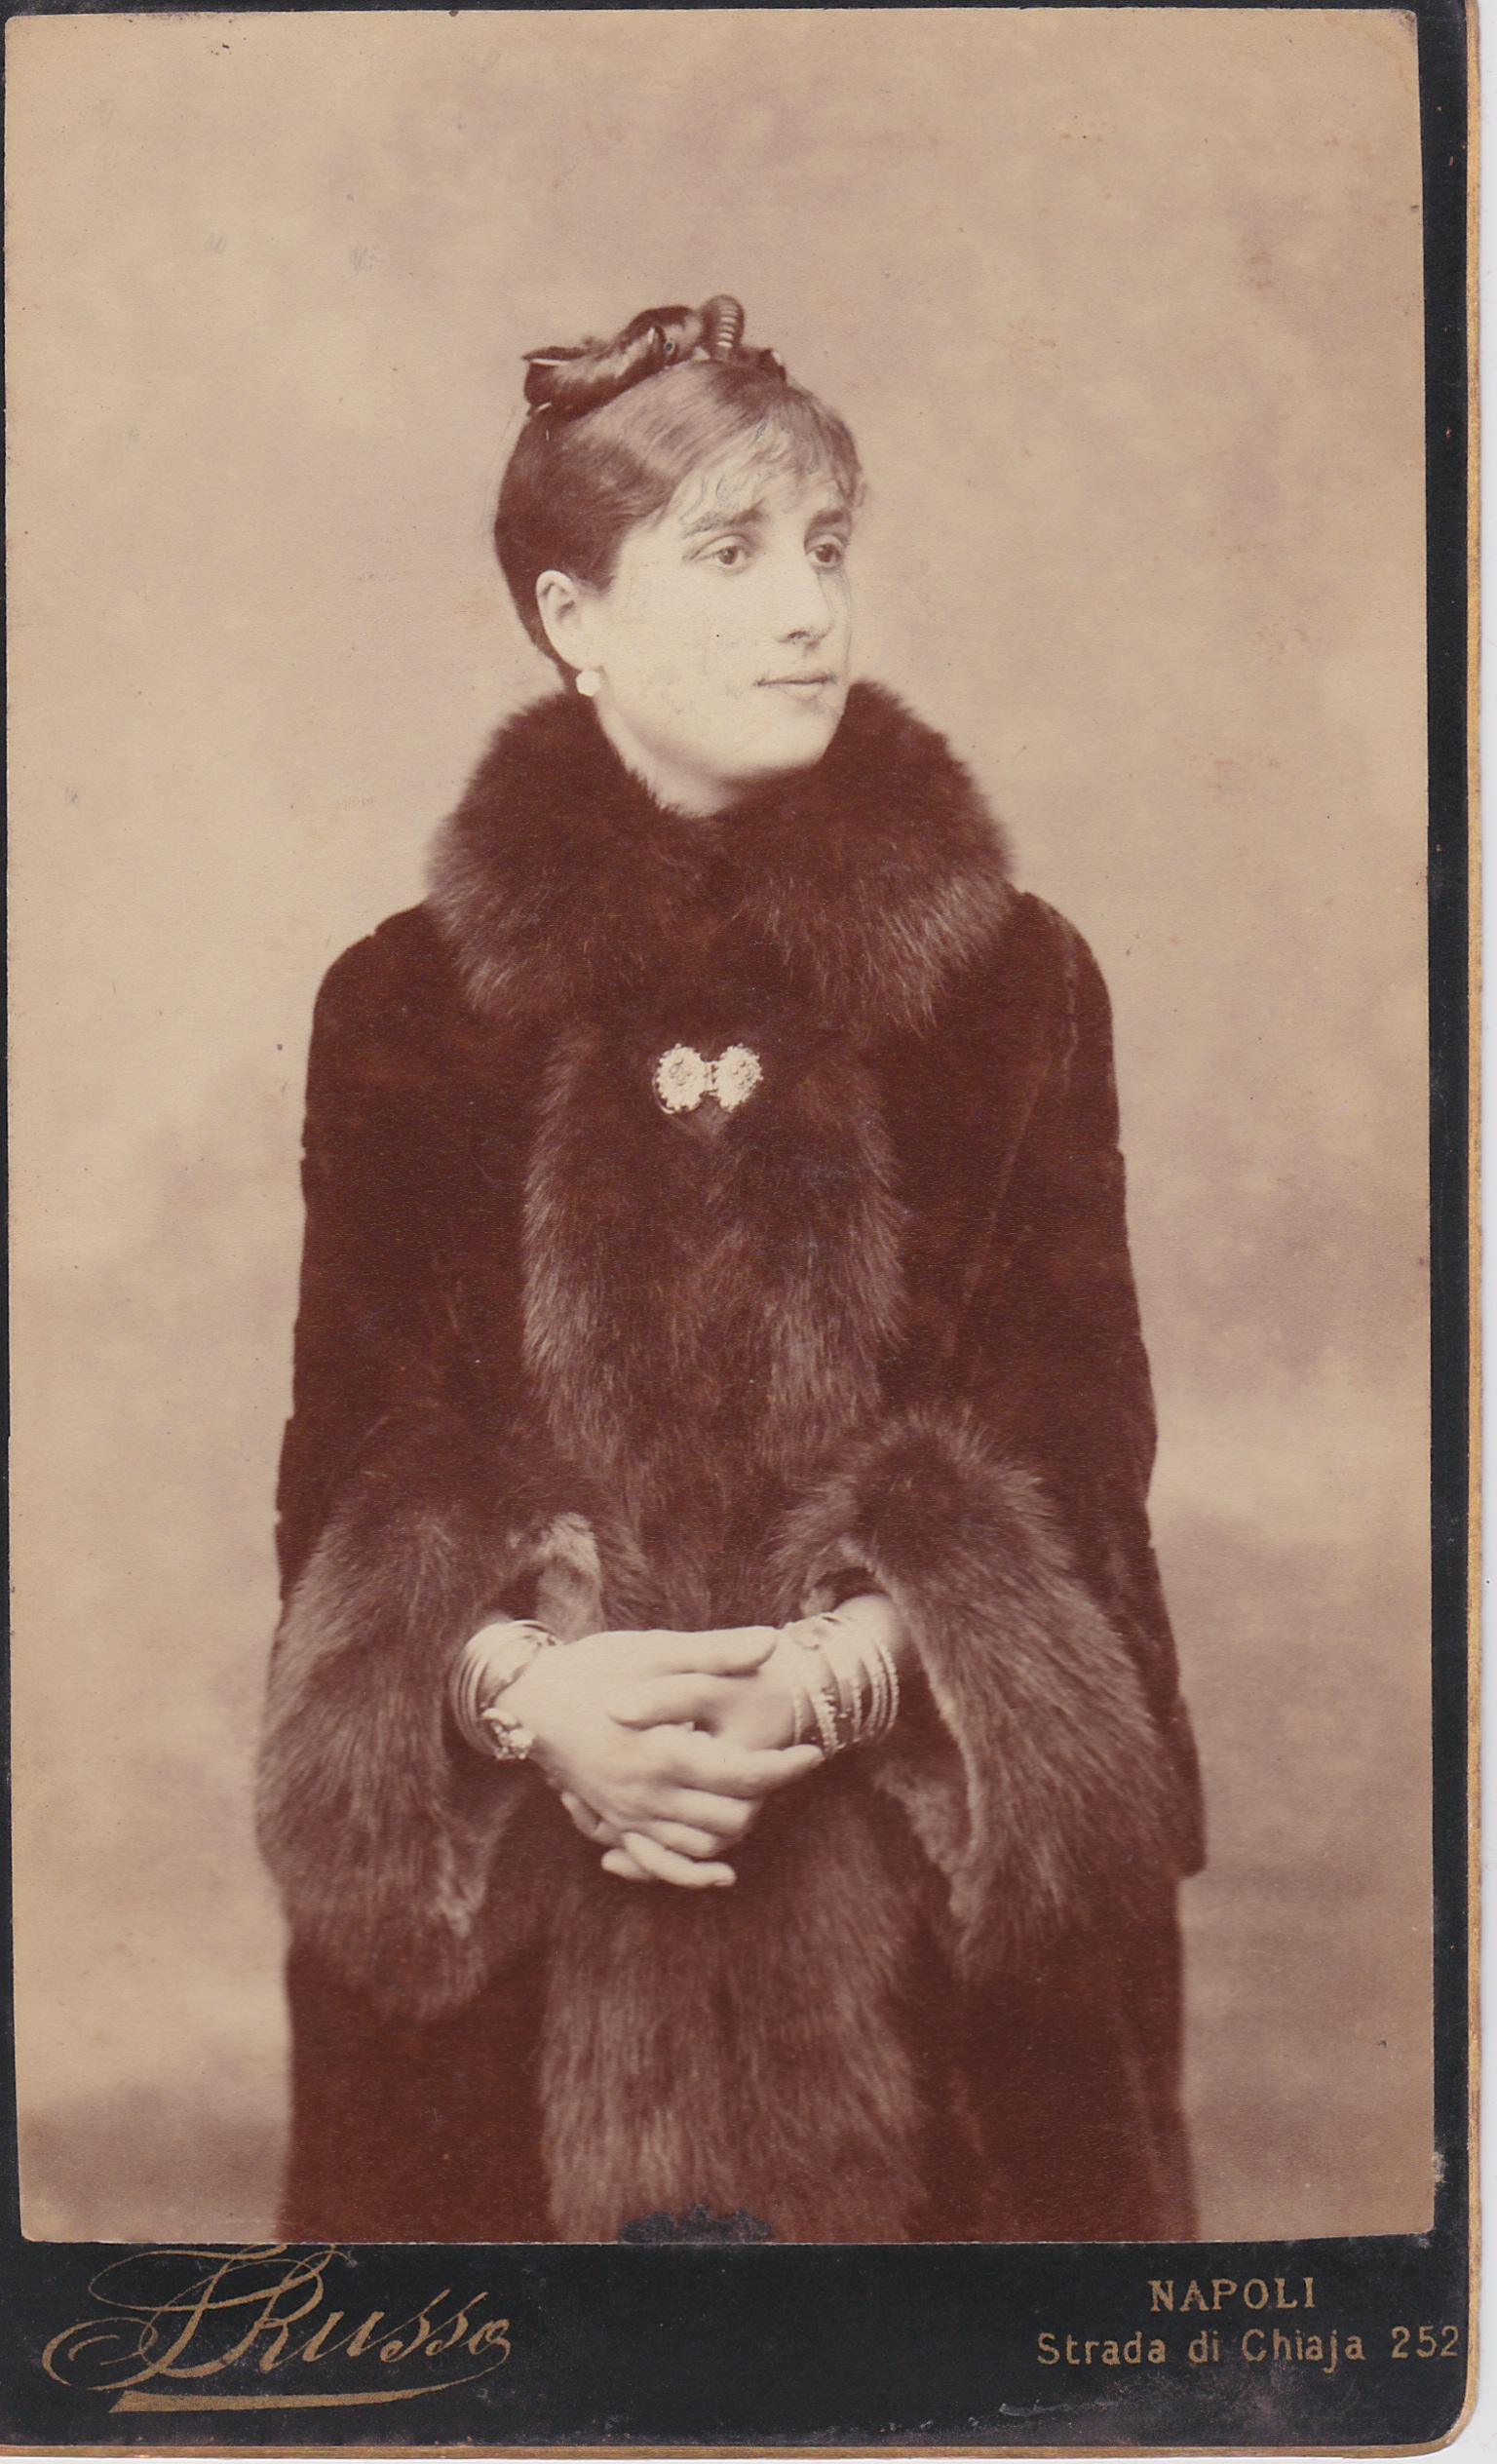 My great-great-grandmother, Adele De Forcade.